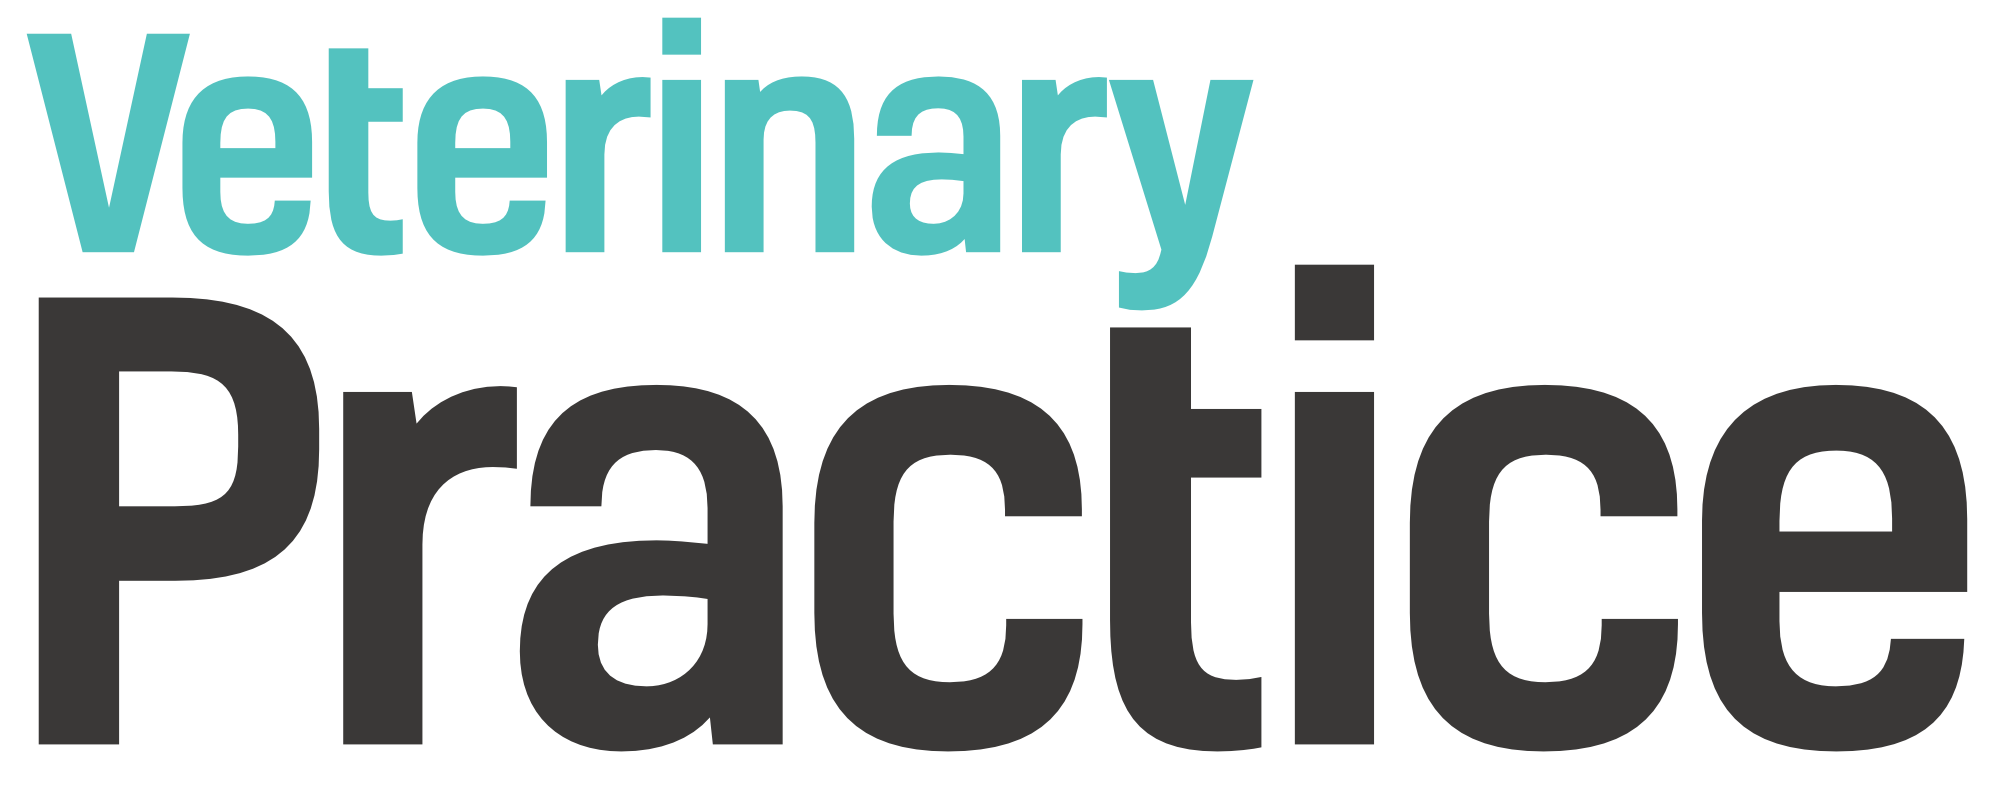 Veterinary Practice Magazine